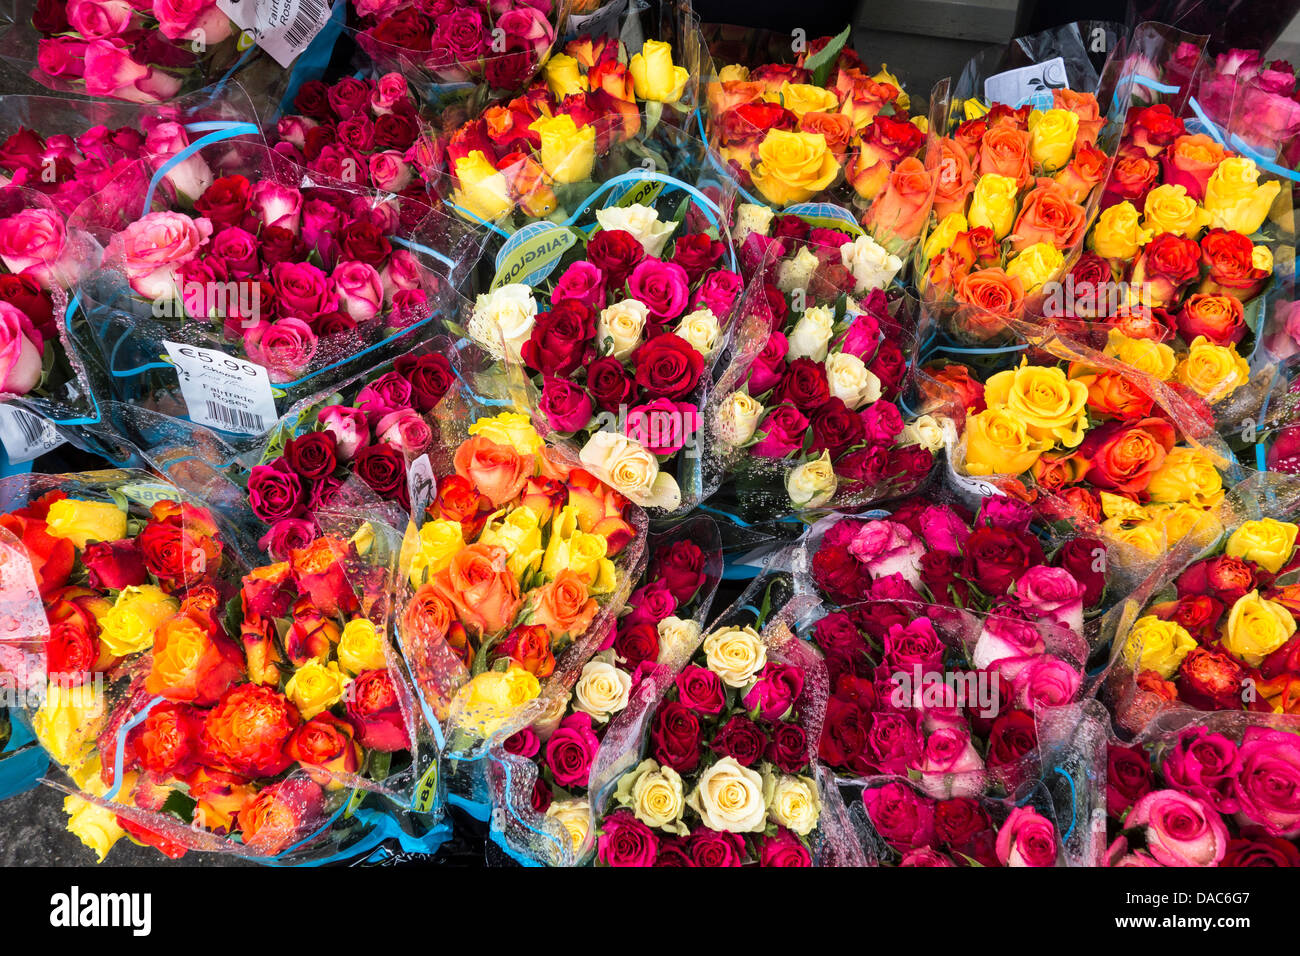 Bouquets of roses on sale in front of a flower shop- red orange, yellow, pink and purple - Stock Image